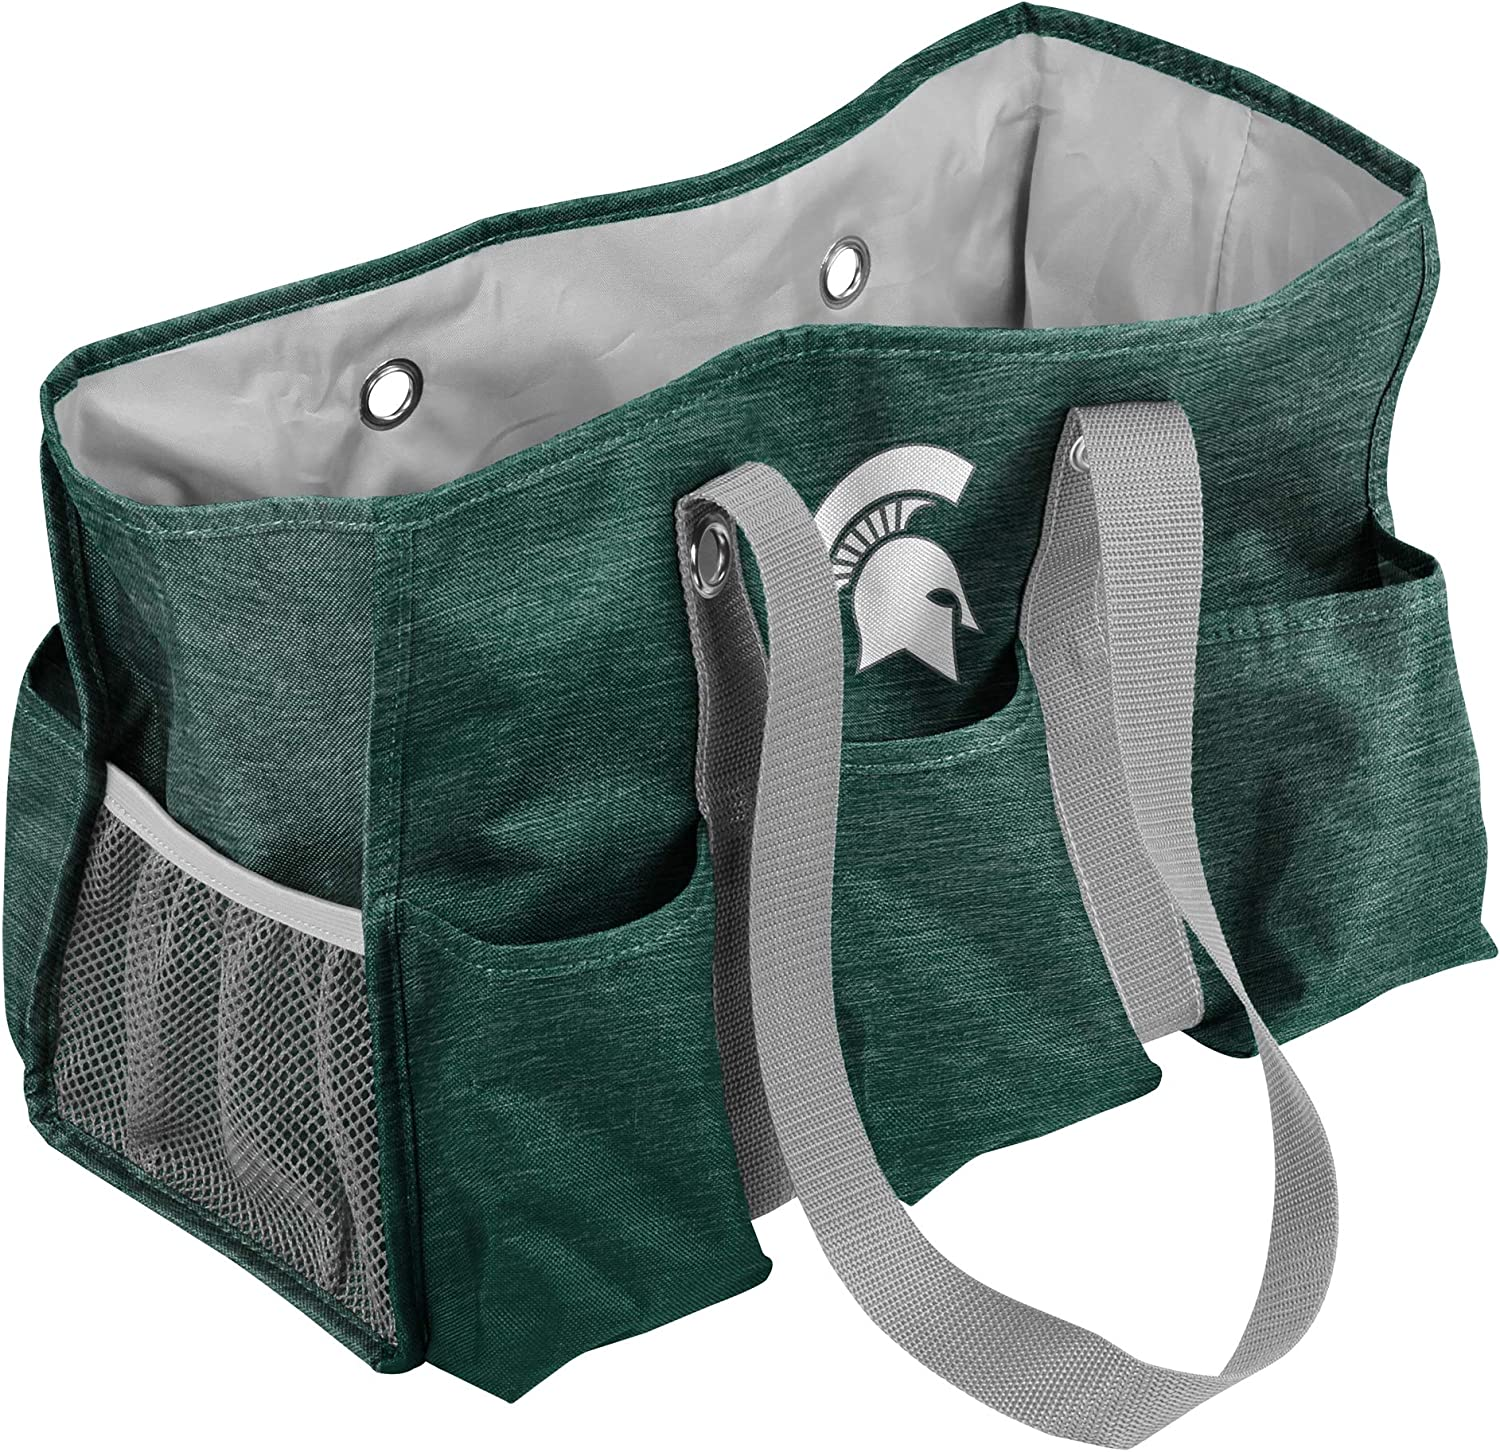 Logo Brands Officially Licensed NCAA Jr One Team 55% OFF Caddy Now free shipping Size Co